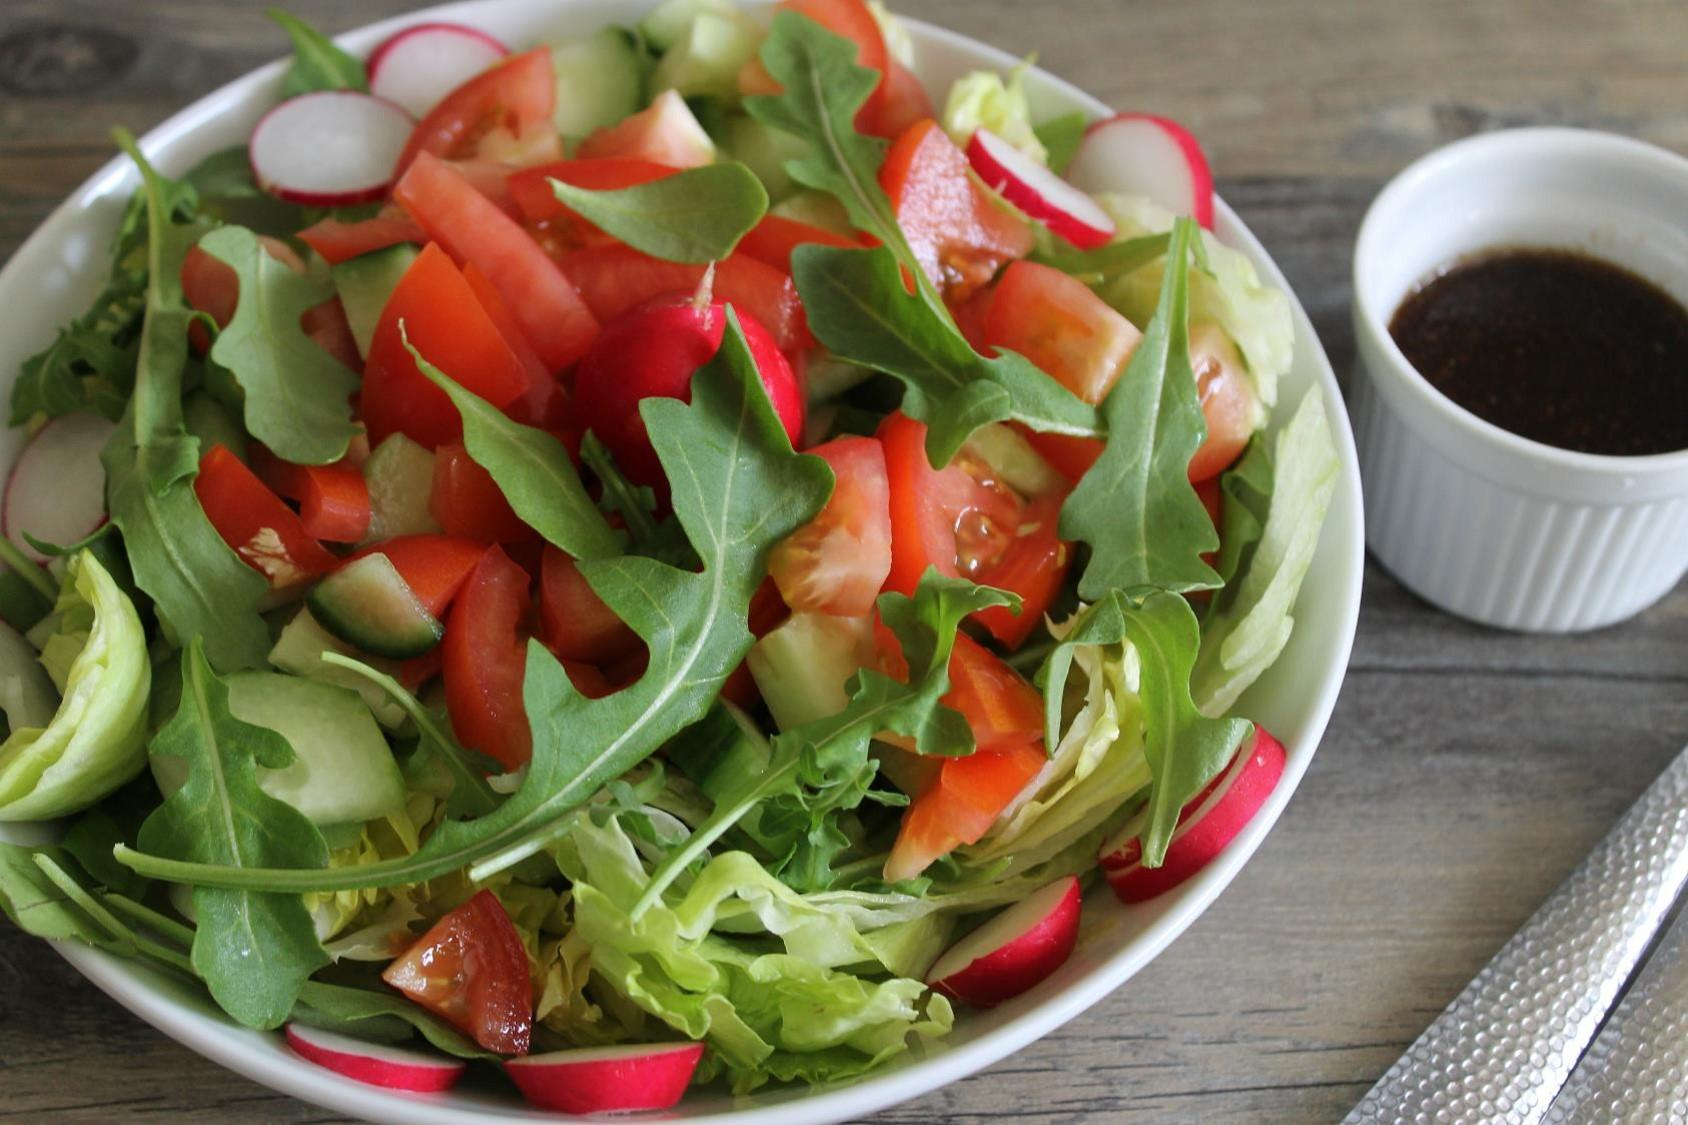 Everyday Salad with Balsamic Dijon Dressing